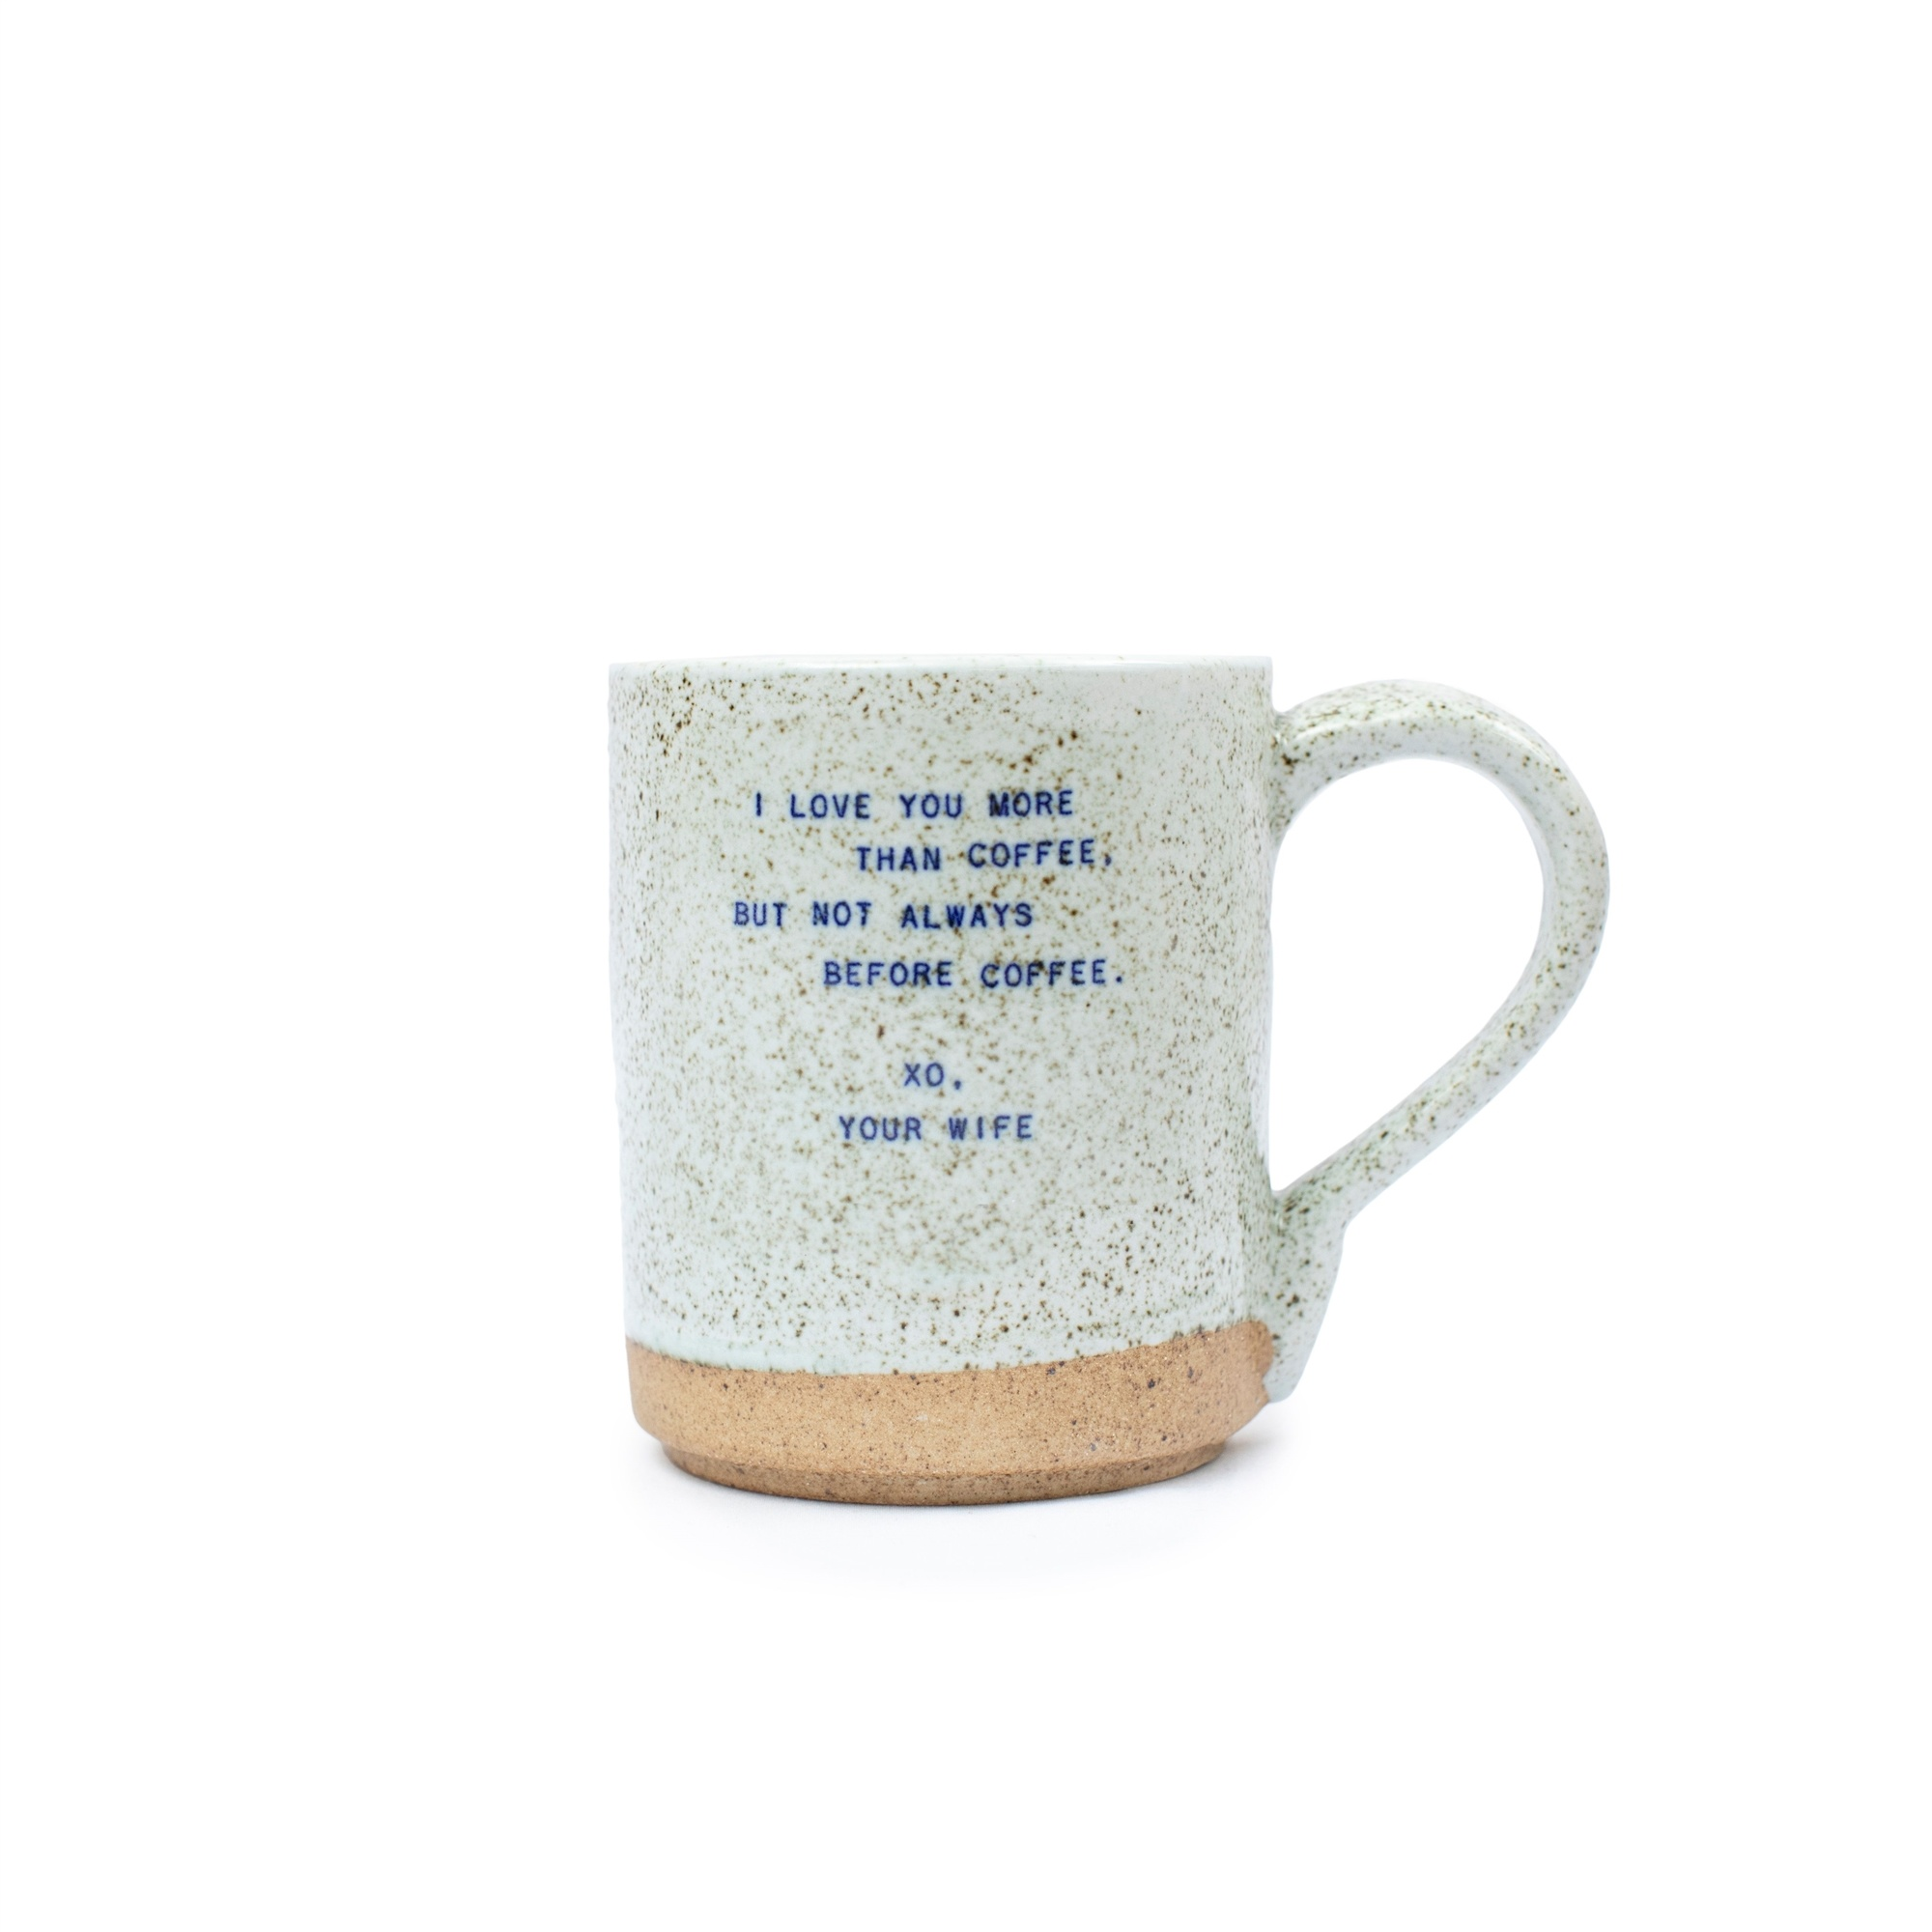 Sugarboo & Co. Sugarboo Mug - Your Wife